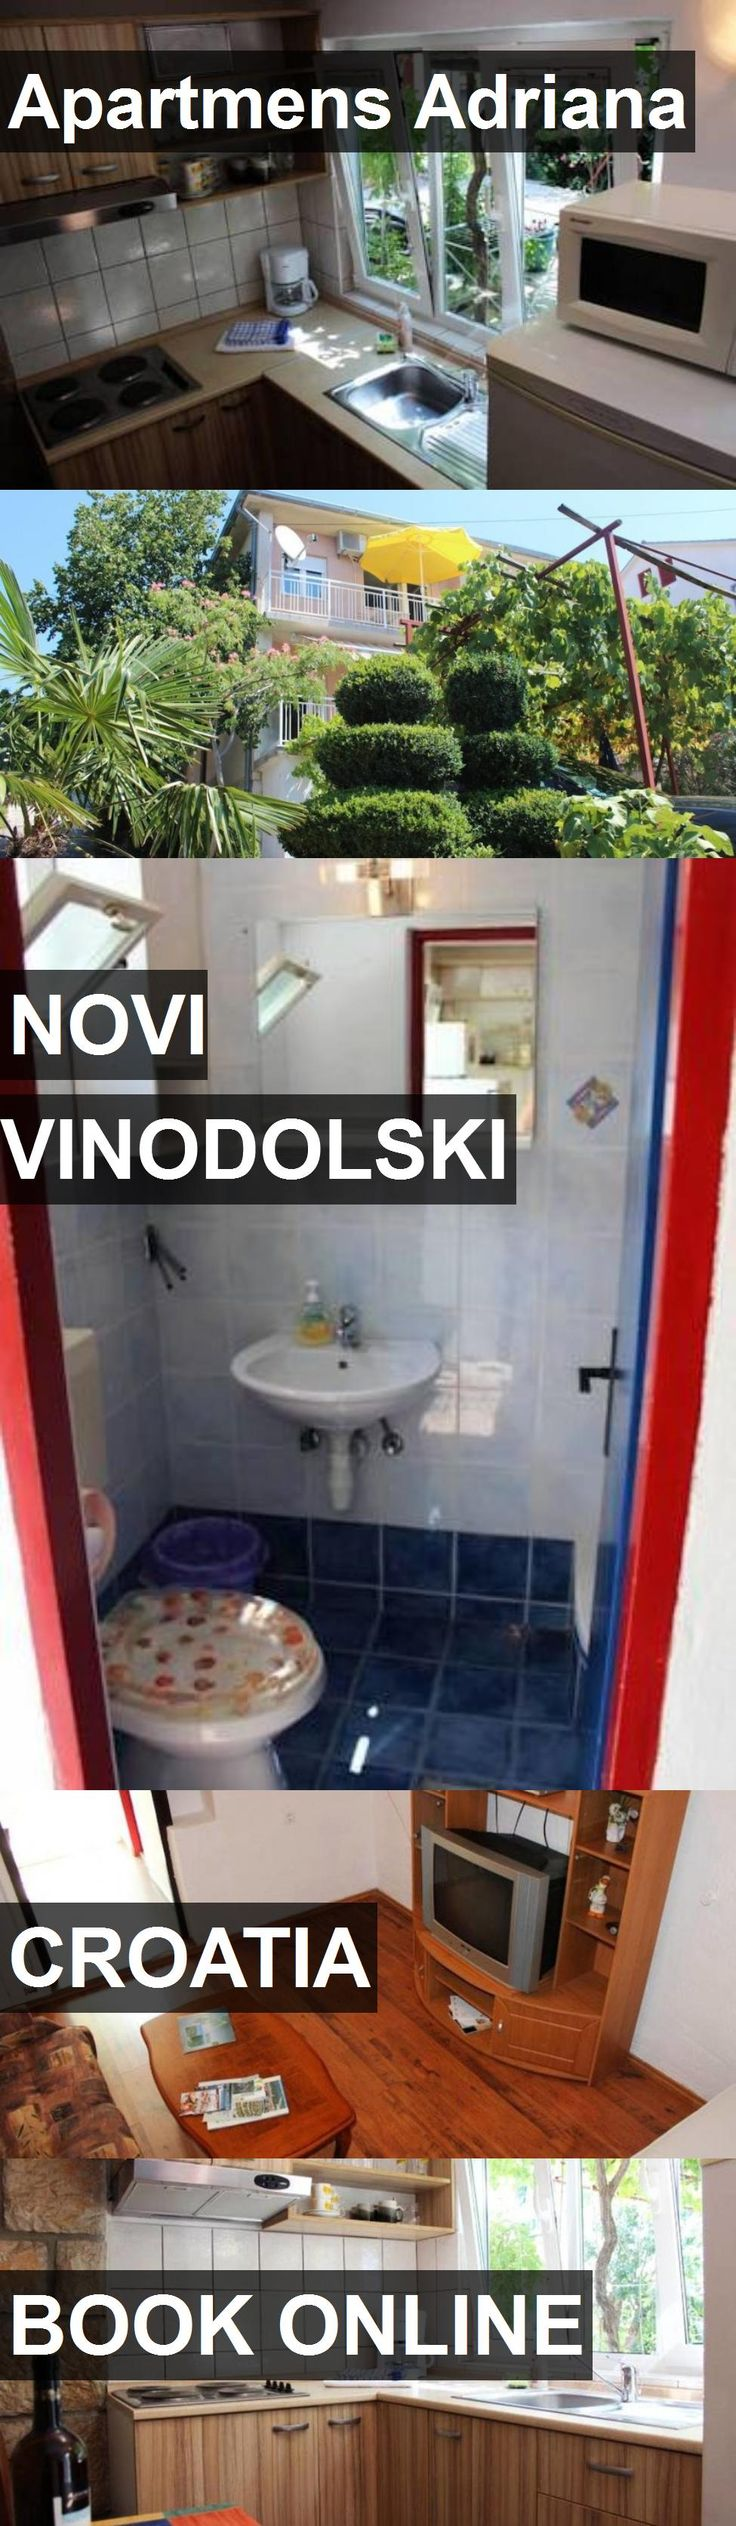 Hotel Apartmens Adriana in Novi Vinodolski, Croatia. For more information, photos, reviews and best prices please follow the link. #Croatia #NoviVinodolski #travel #vacation #hotel